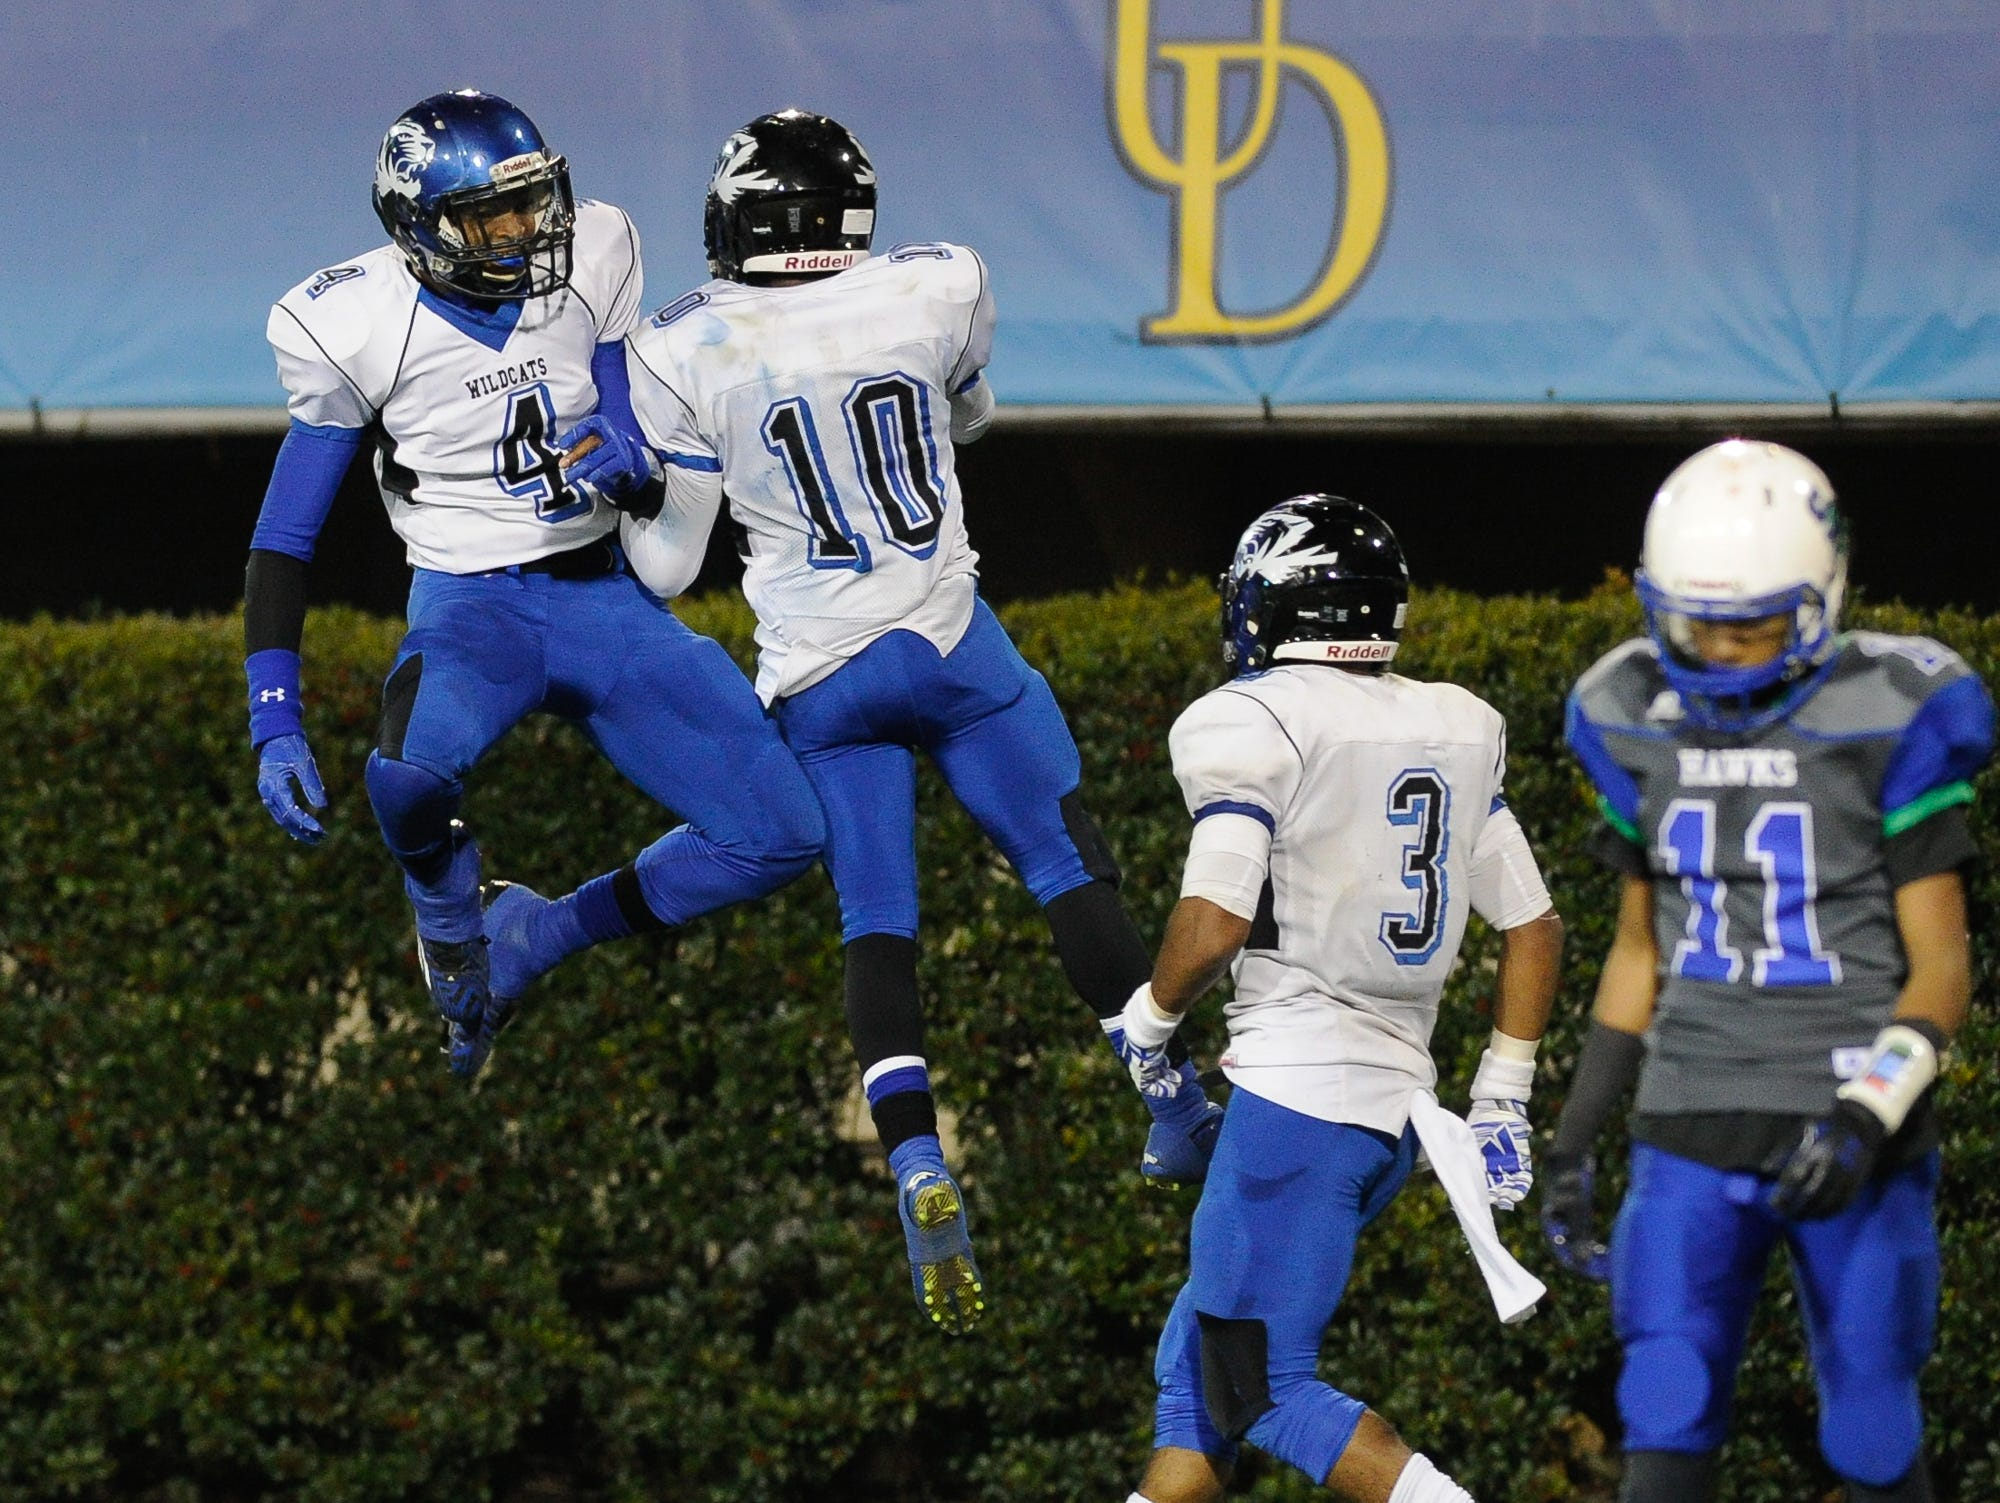 Howard's #4 Earnest Austin and #10 Korey Kent celebrate after scoring against St. George in the Division II championship at the University of Delaware.